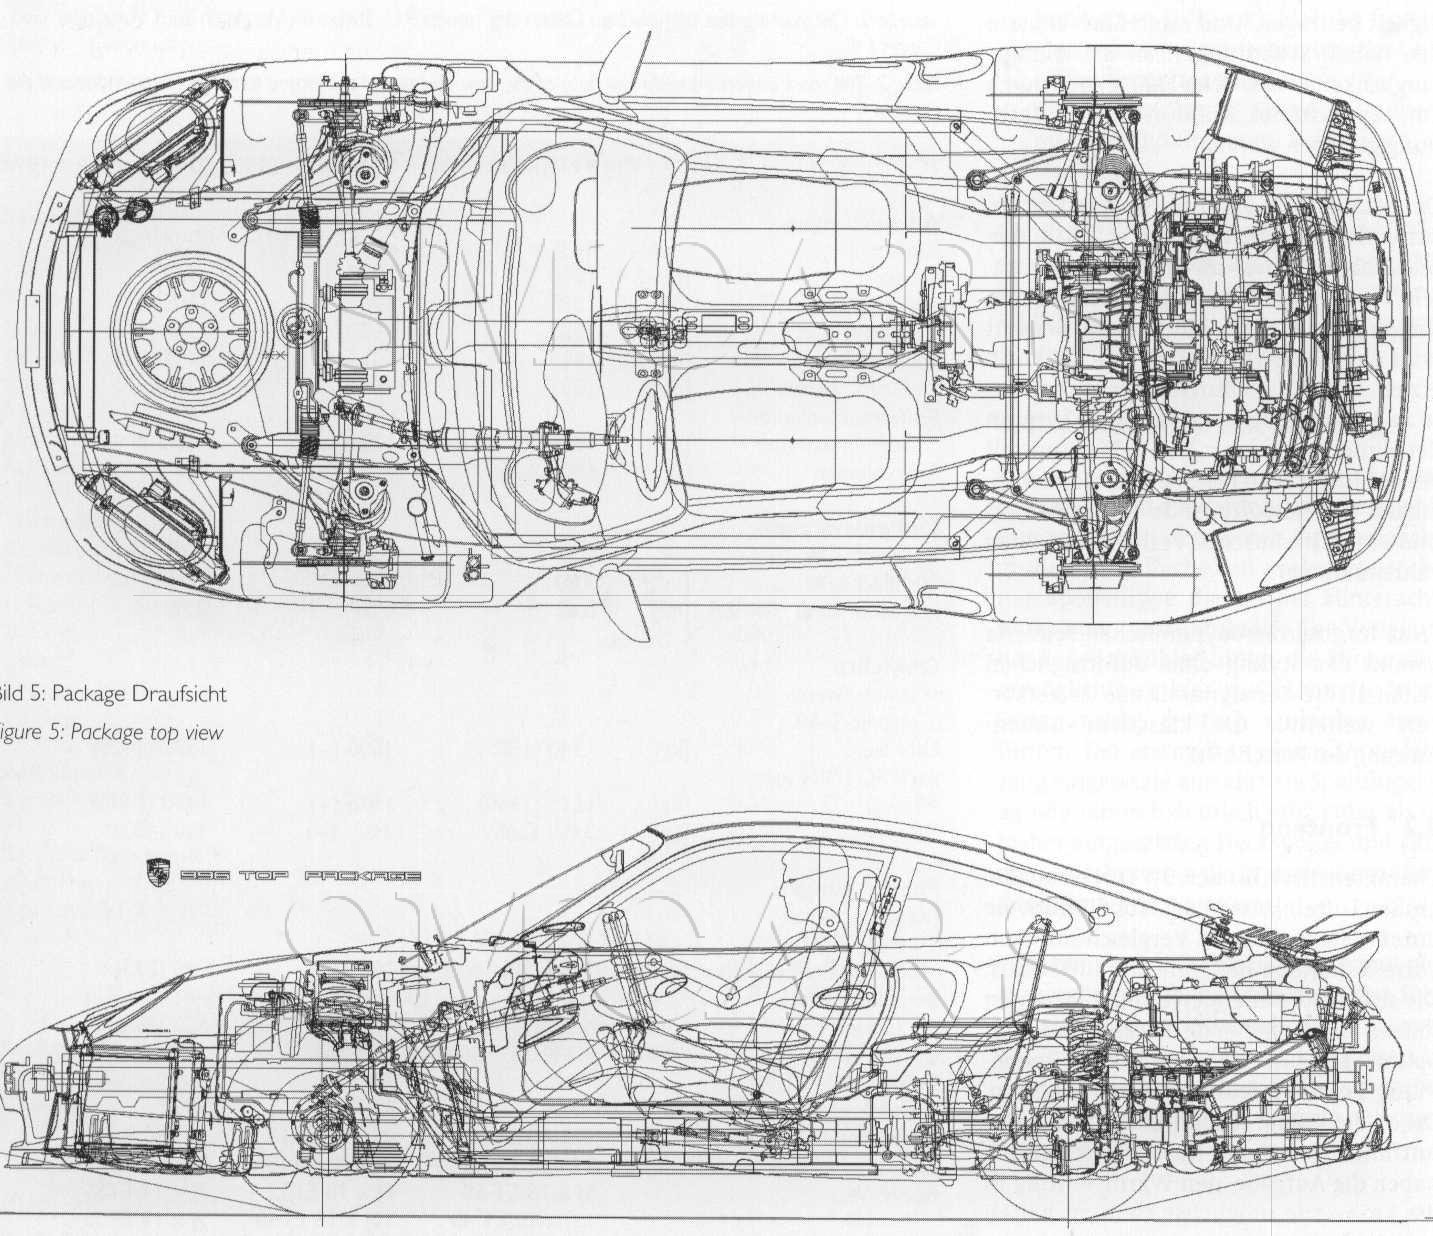 Porsche 911 996 Gt3 R 1999 Racing Cars Engine Cylinder Diagram Porsche911turbo